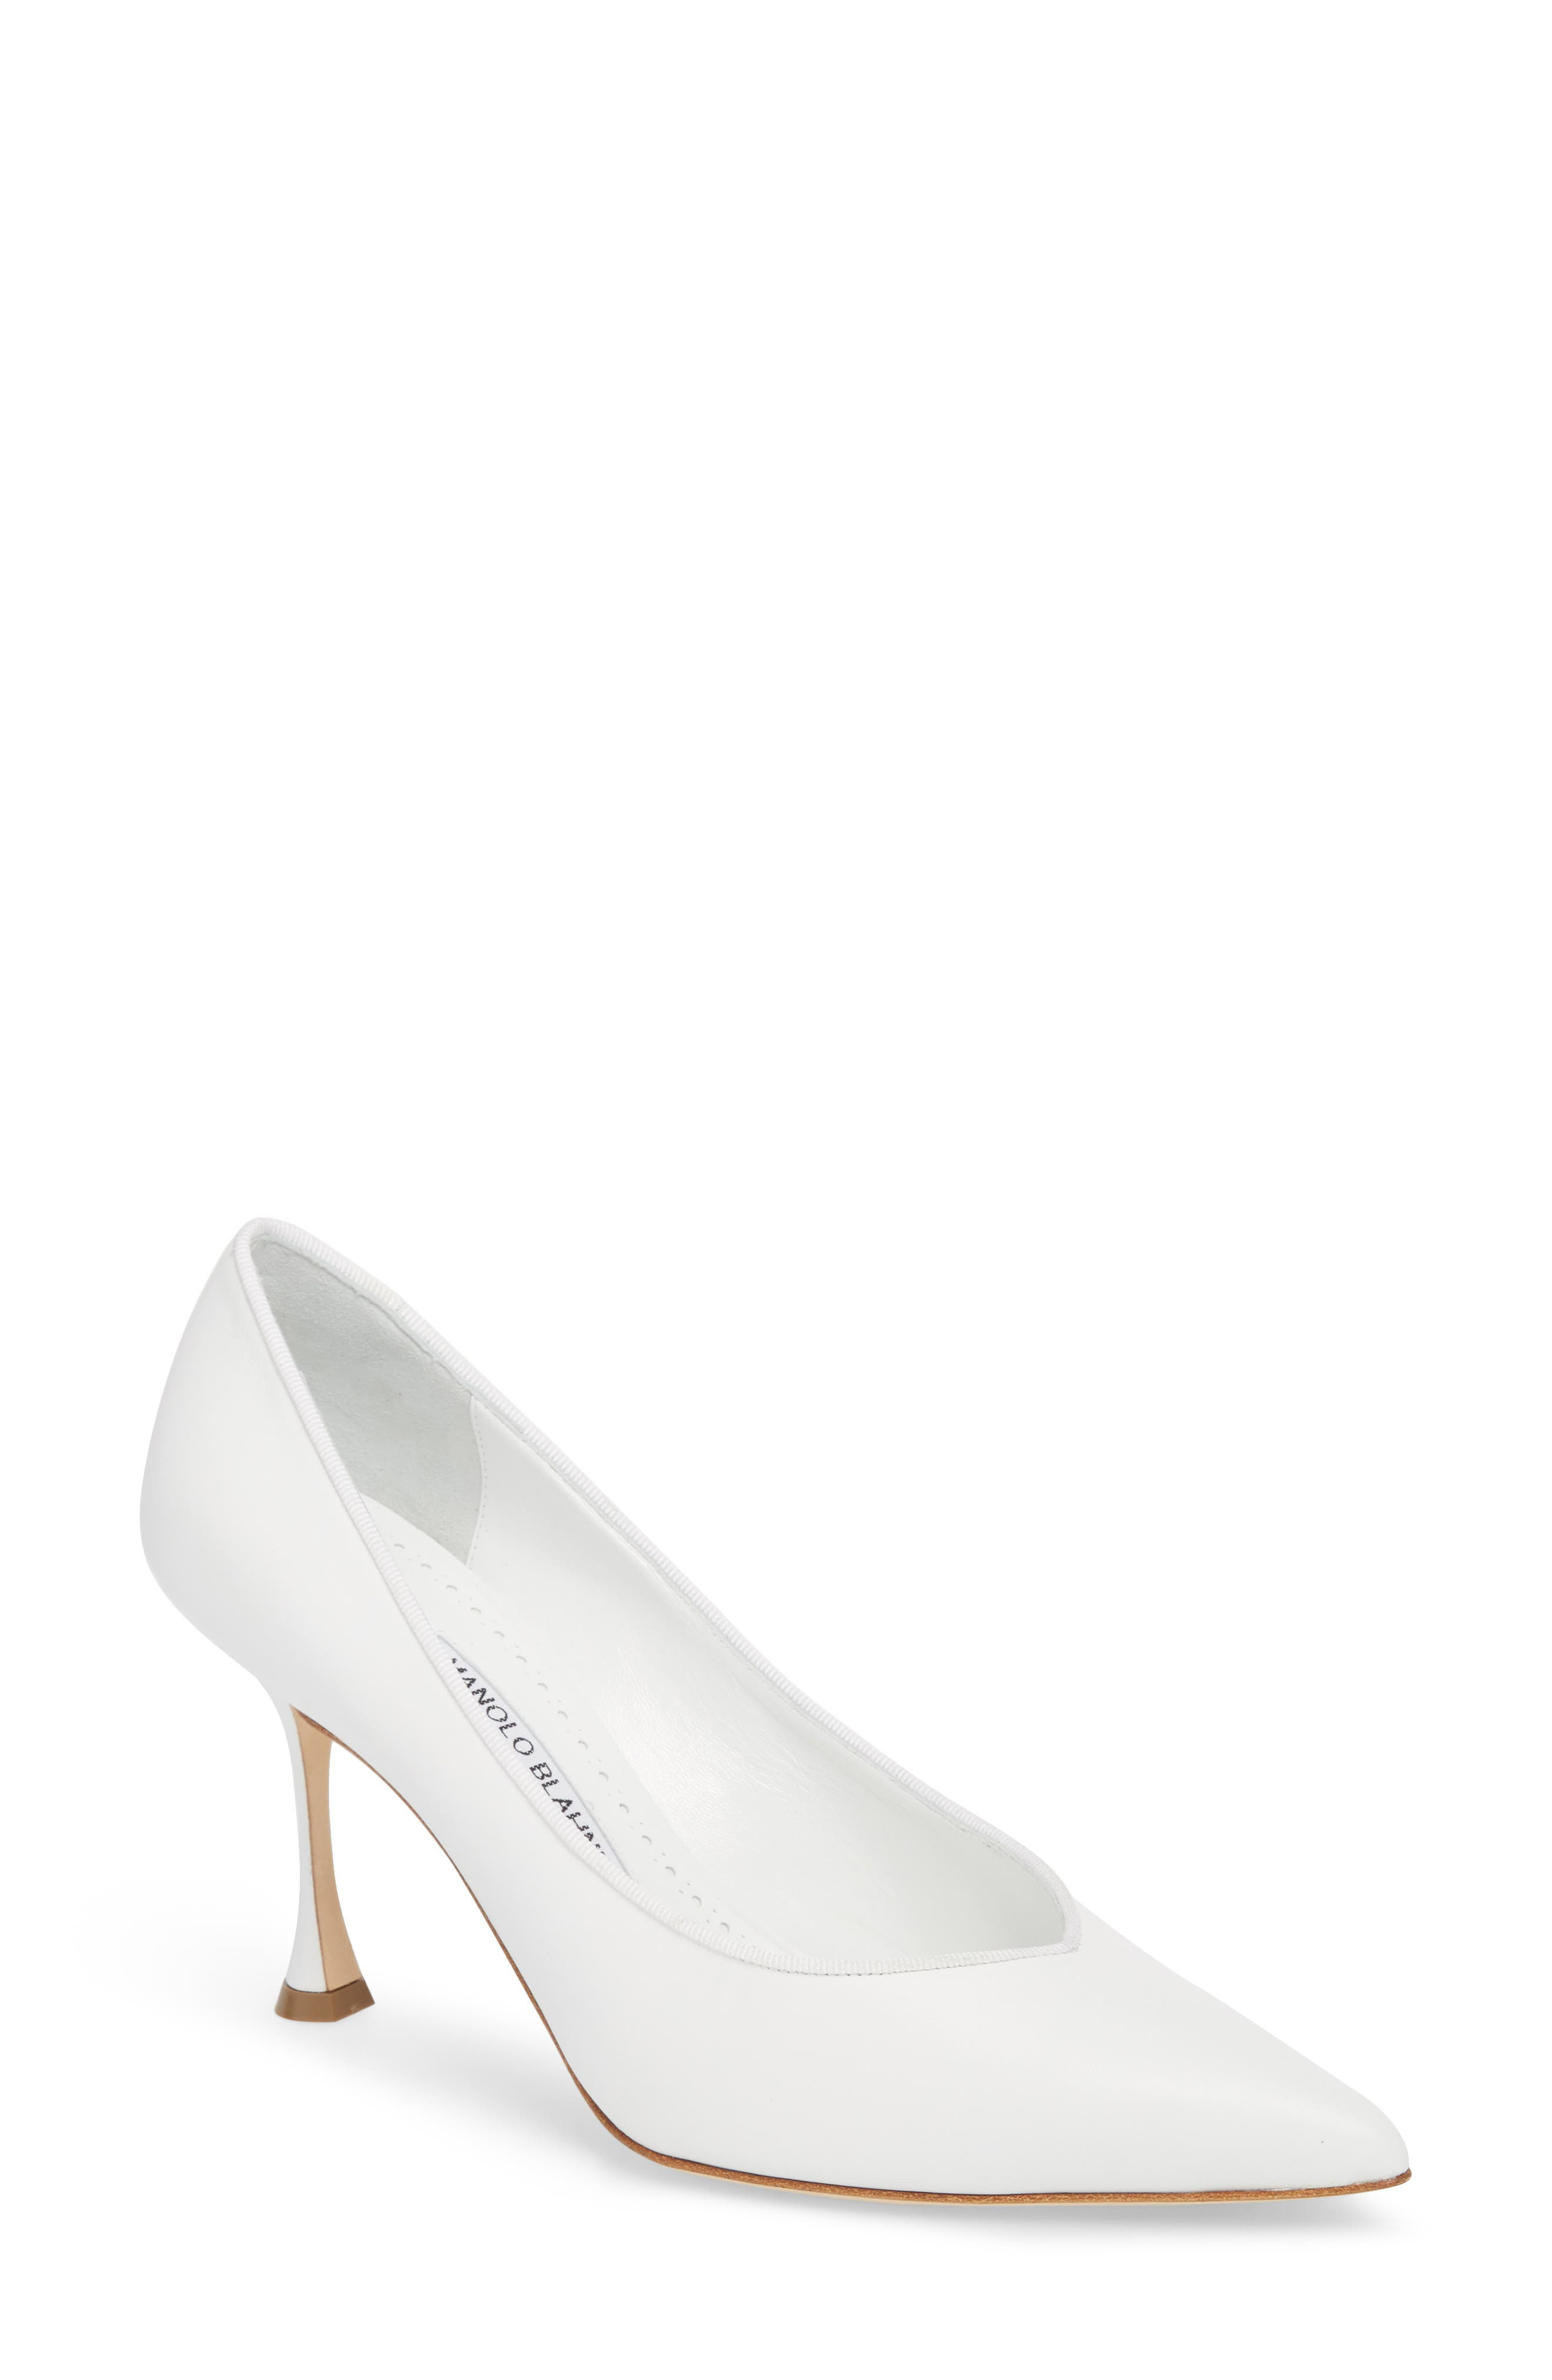 Urgenzapla Pointy Toe Pump,                         Main,                         color, White Leather